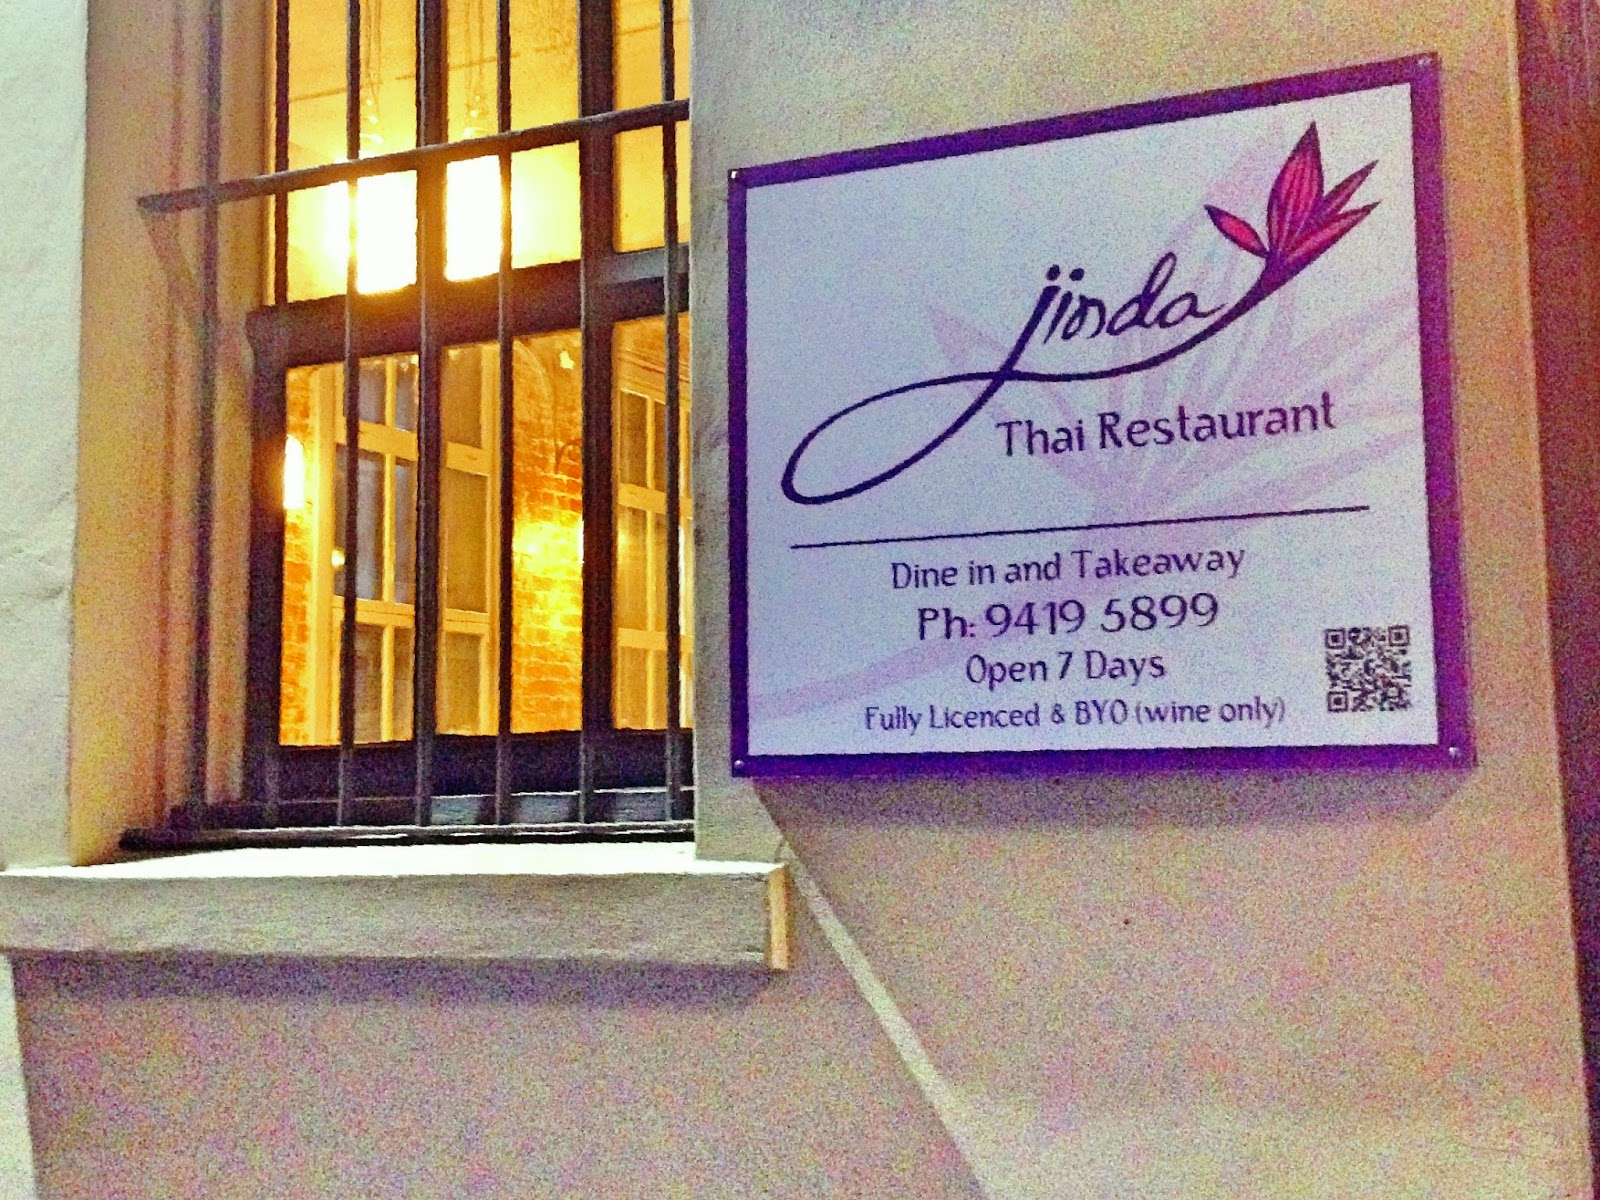 Happily Jinda Thai (1-7 Fergus St Abbotsford) is genuine great-quality Thai food (only) at quite reasonable prices. It was opened in July 2013 by the ... & Jinda Thai Restaurant